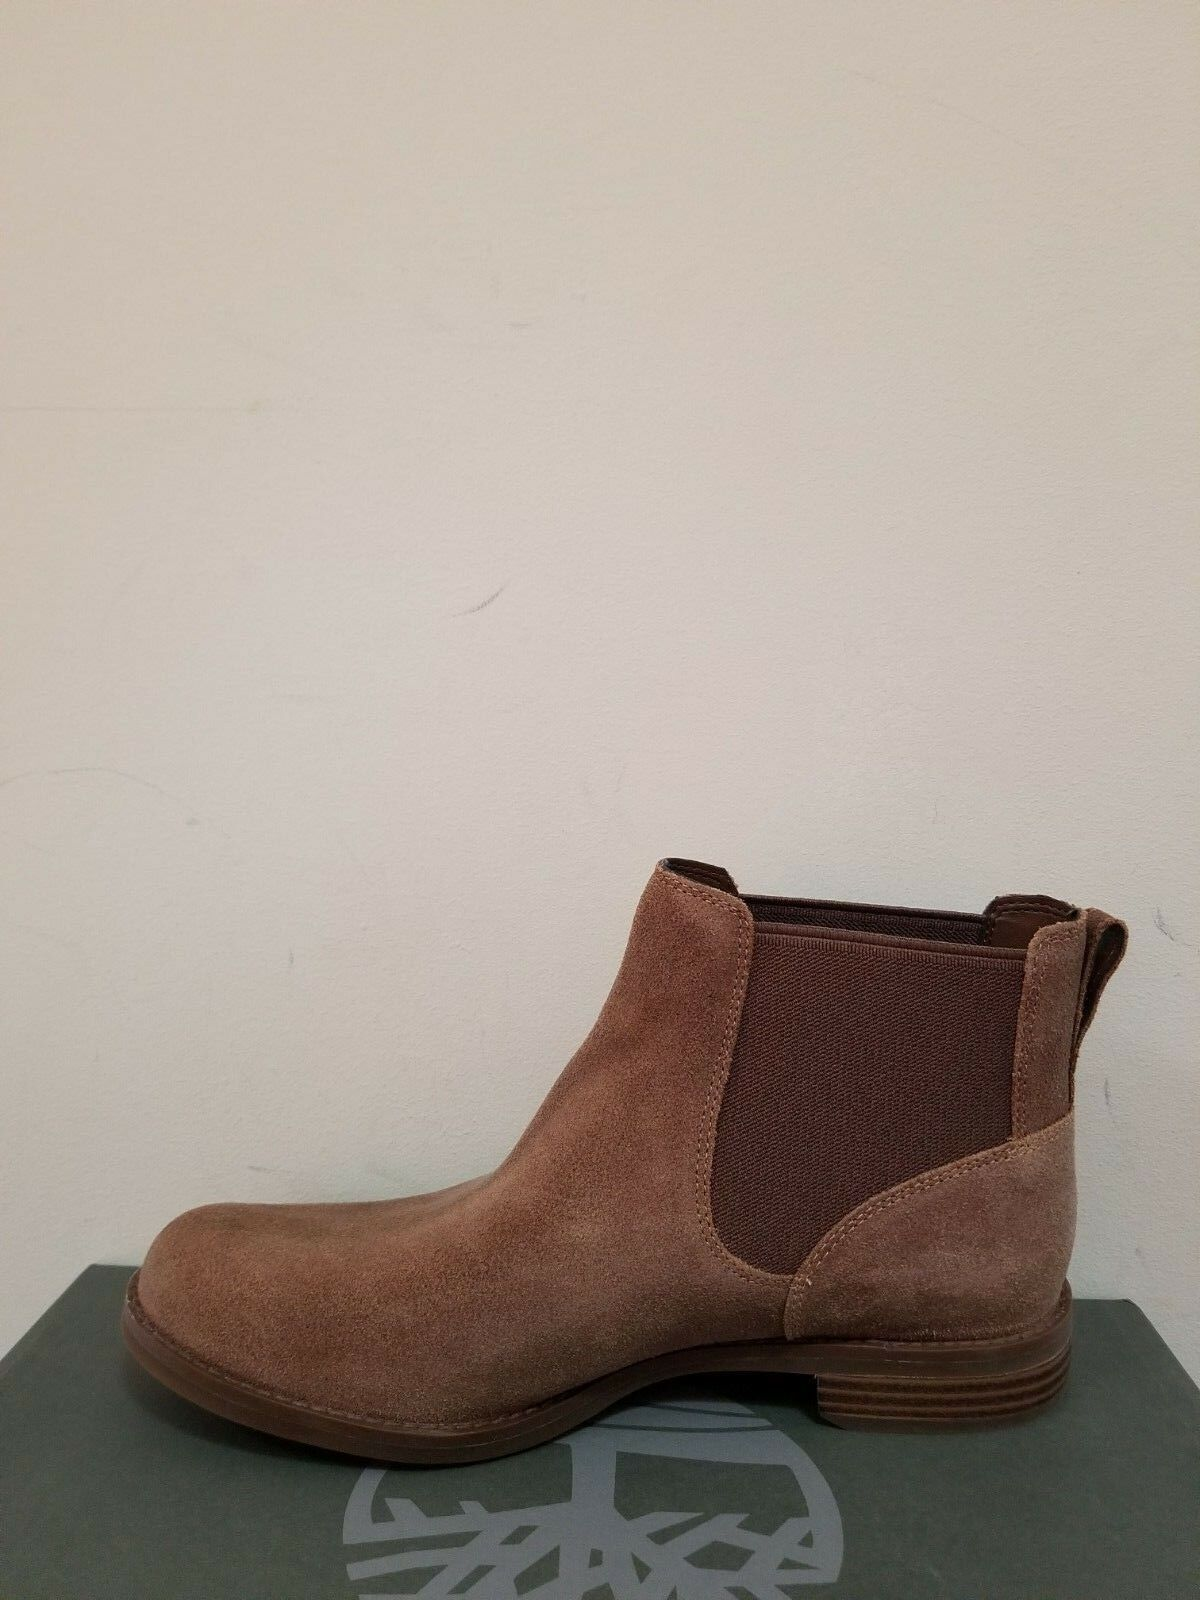 Timberland Women's Magby Chelsea Ankle Boots NIB 1